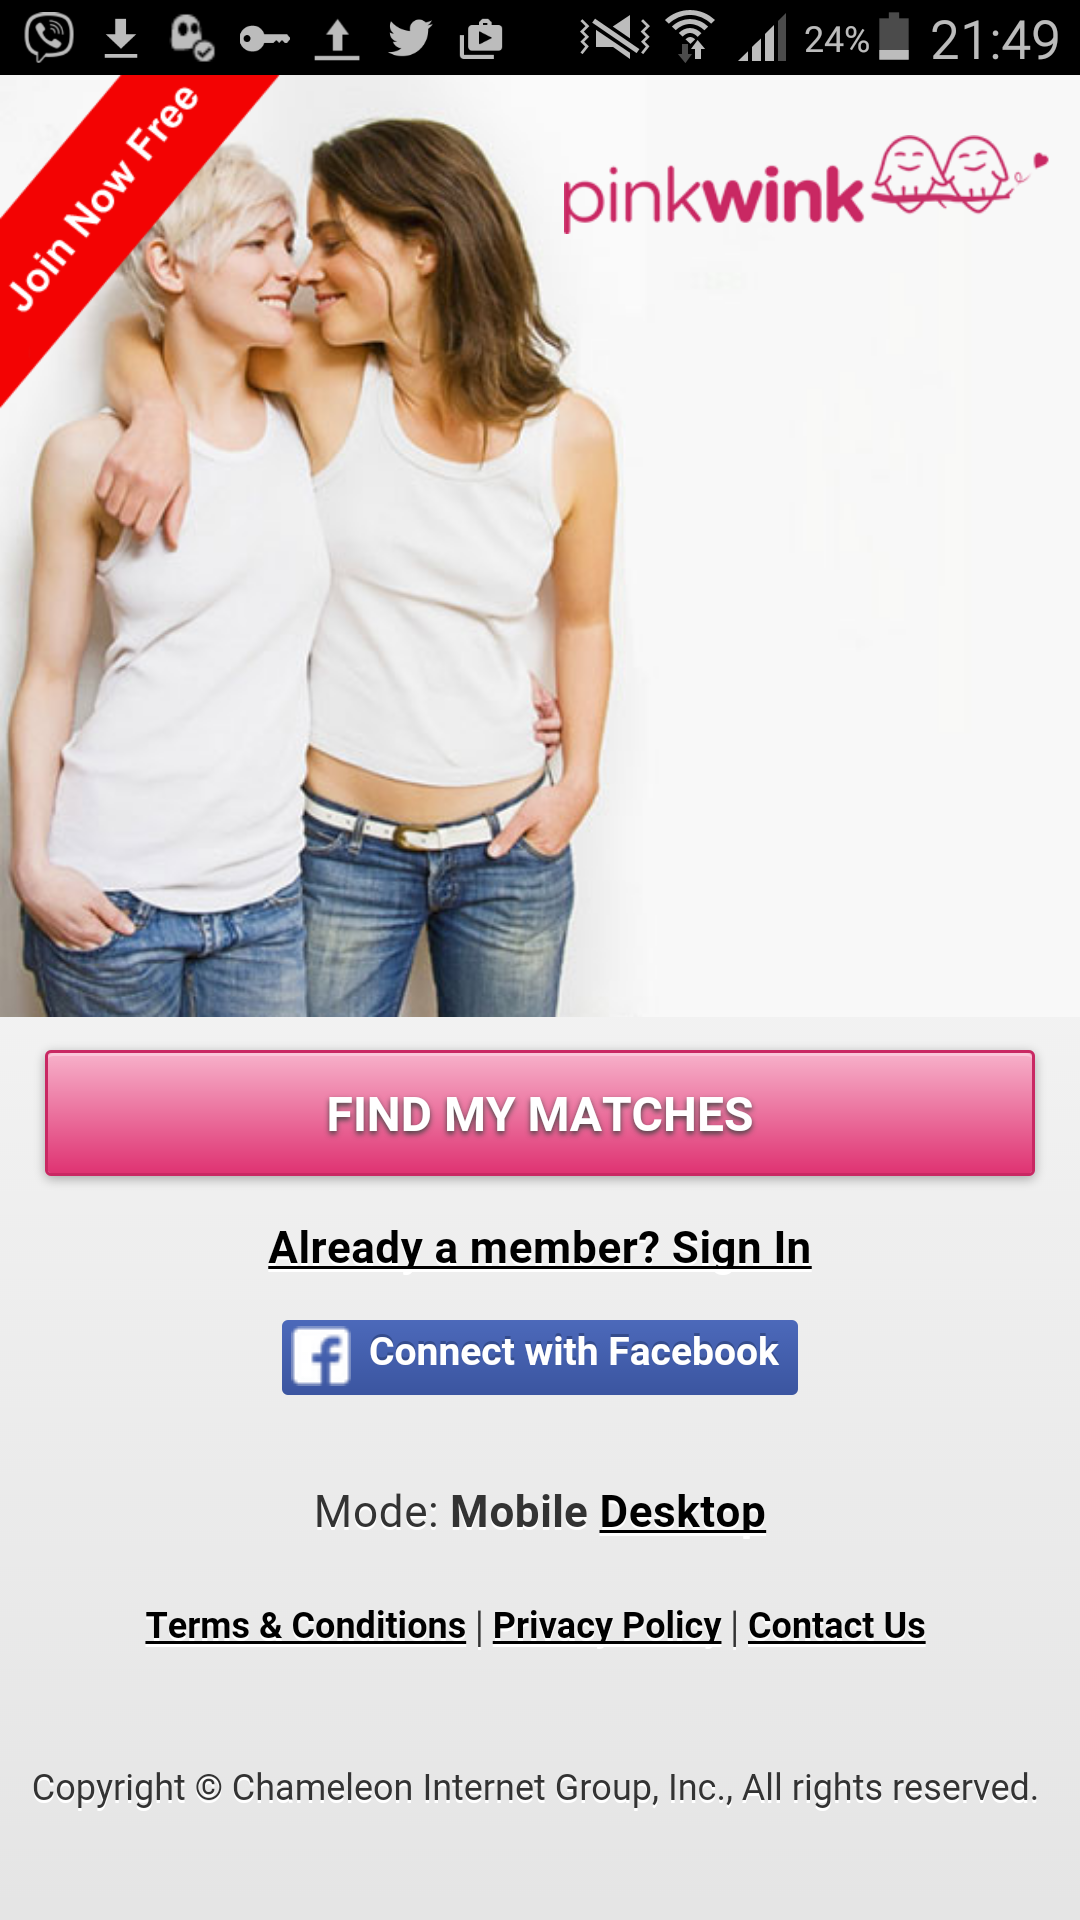 zhangzhou lesbian dating site Asian women online dating, choosing an unique asian dating site -- asiamecom to meet your asian girls as one of online dating and personal site, we have paved the way for love and relationship.